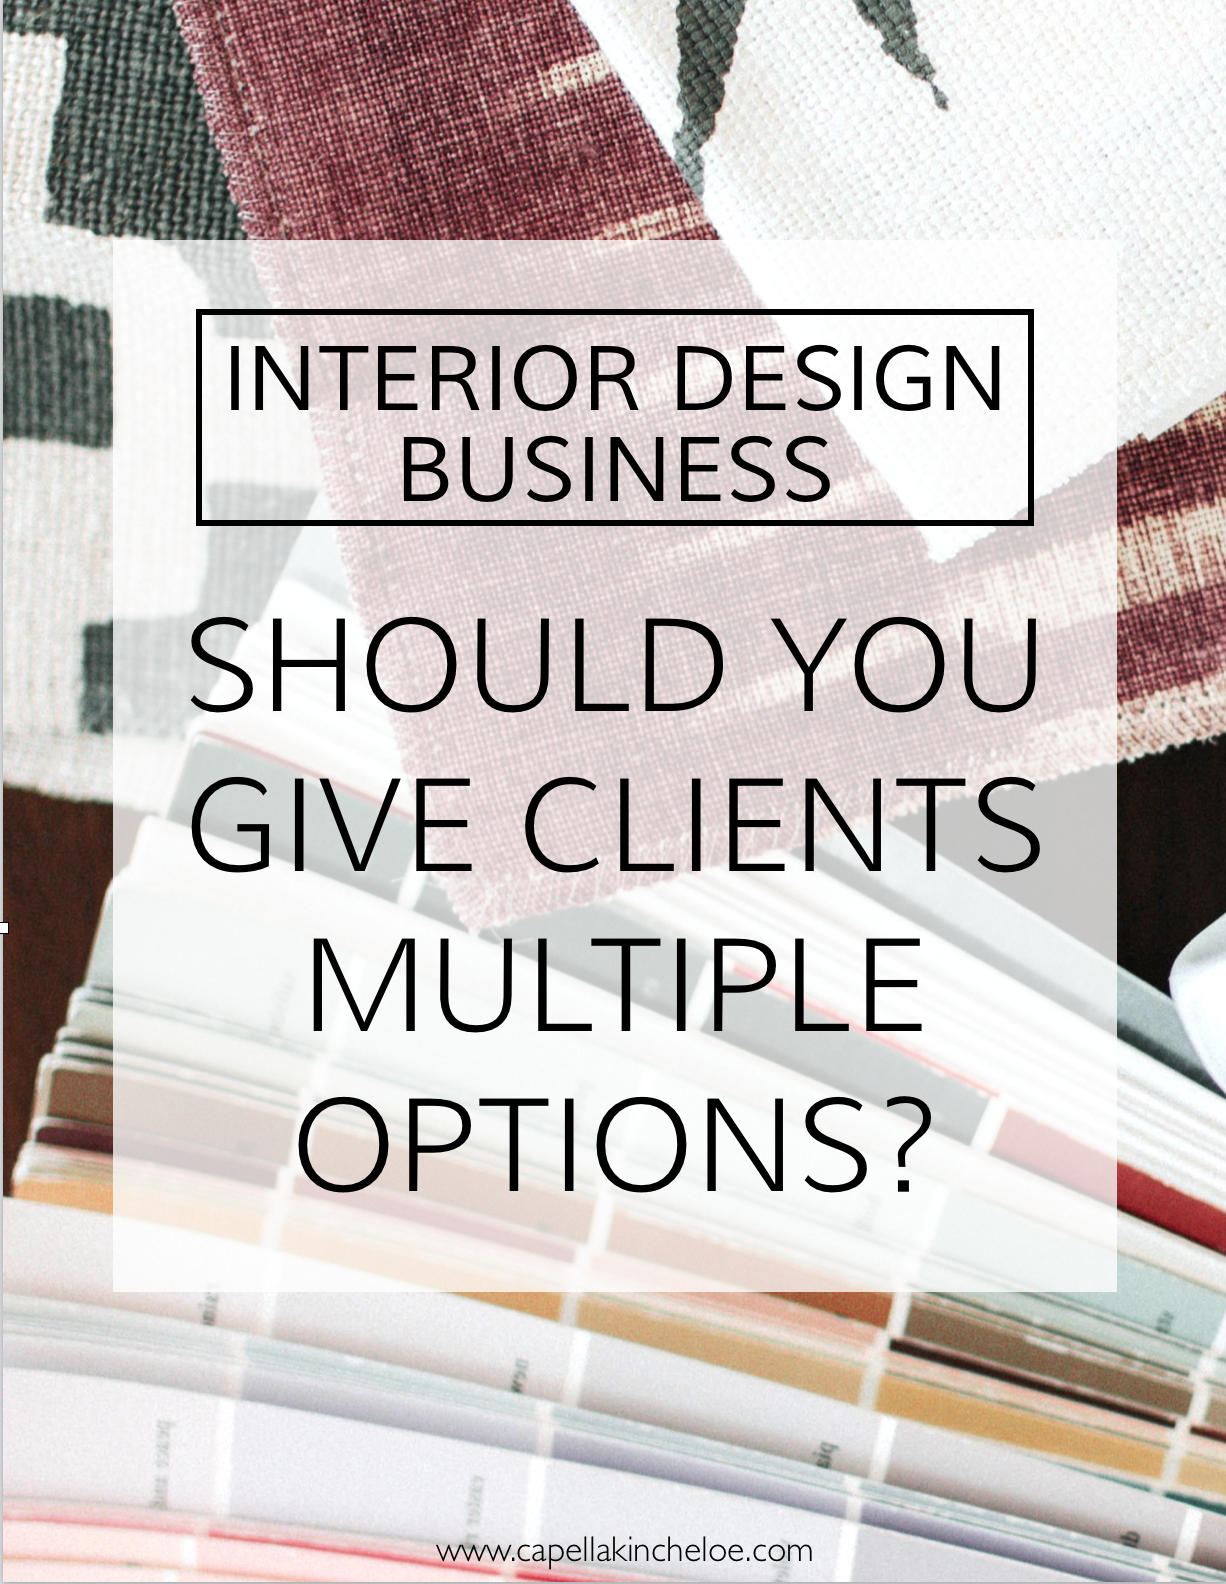 Good Should You Give Clients Options?